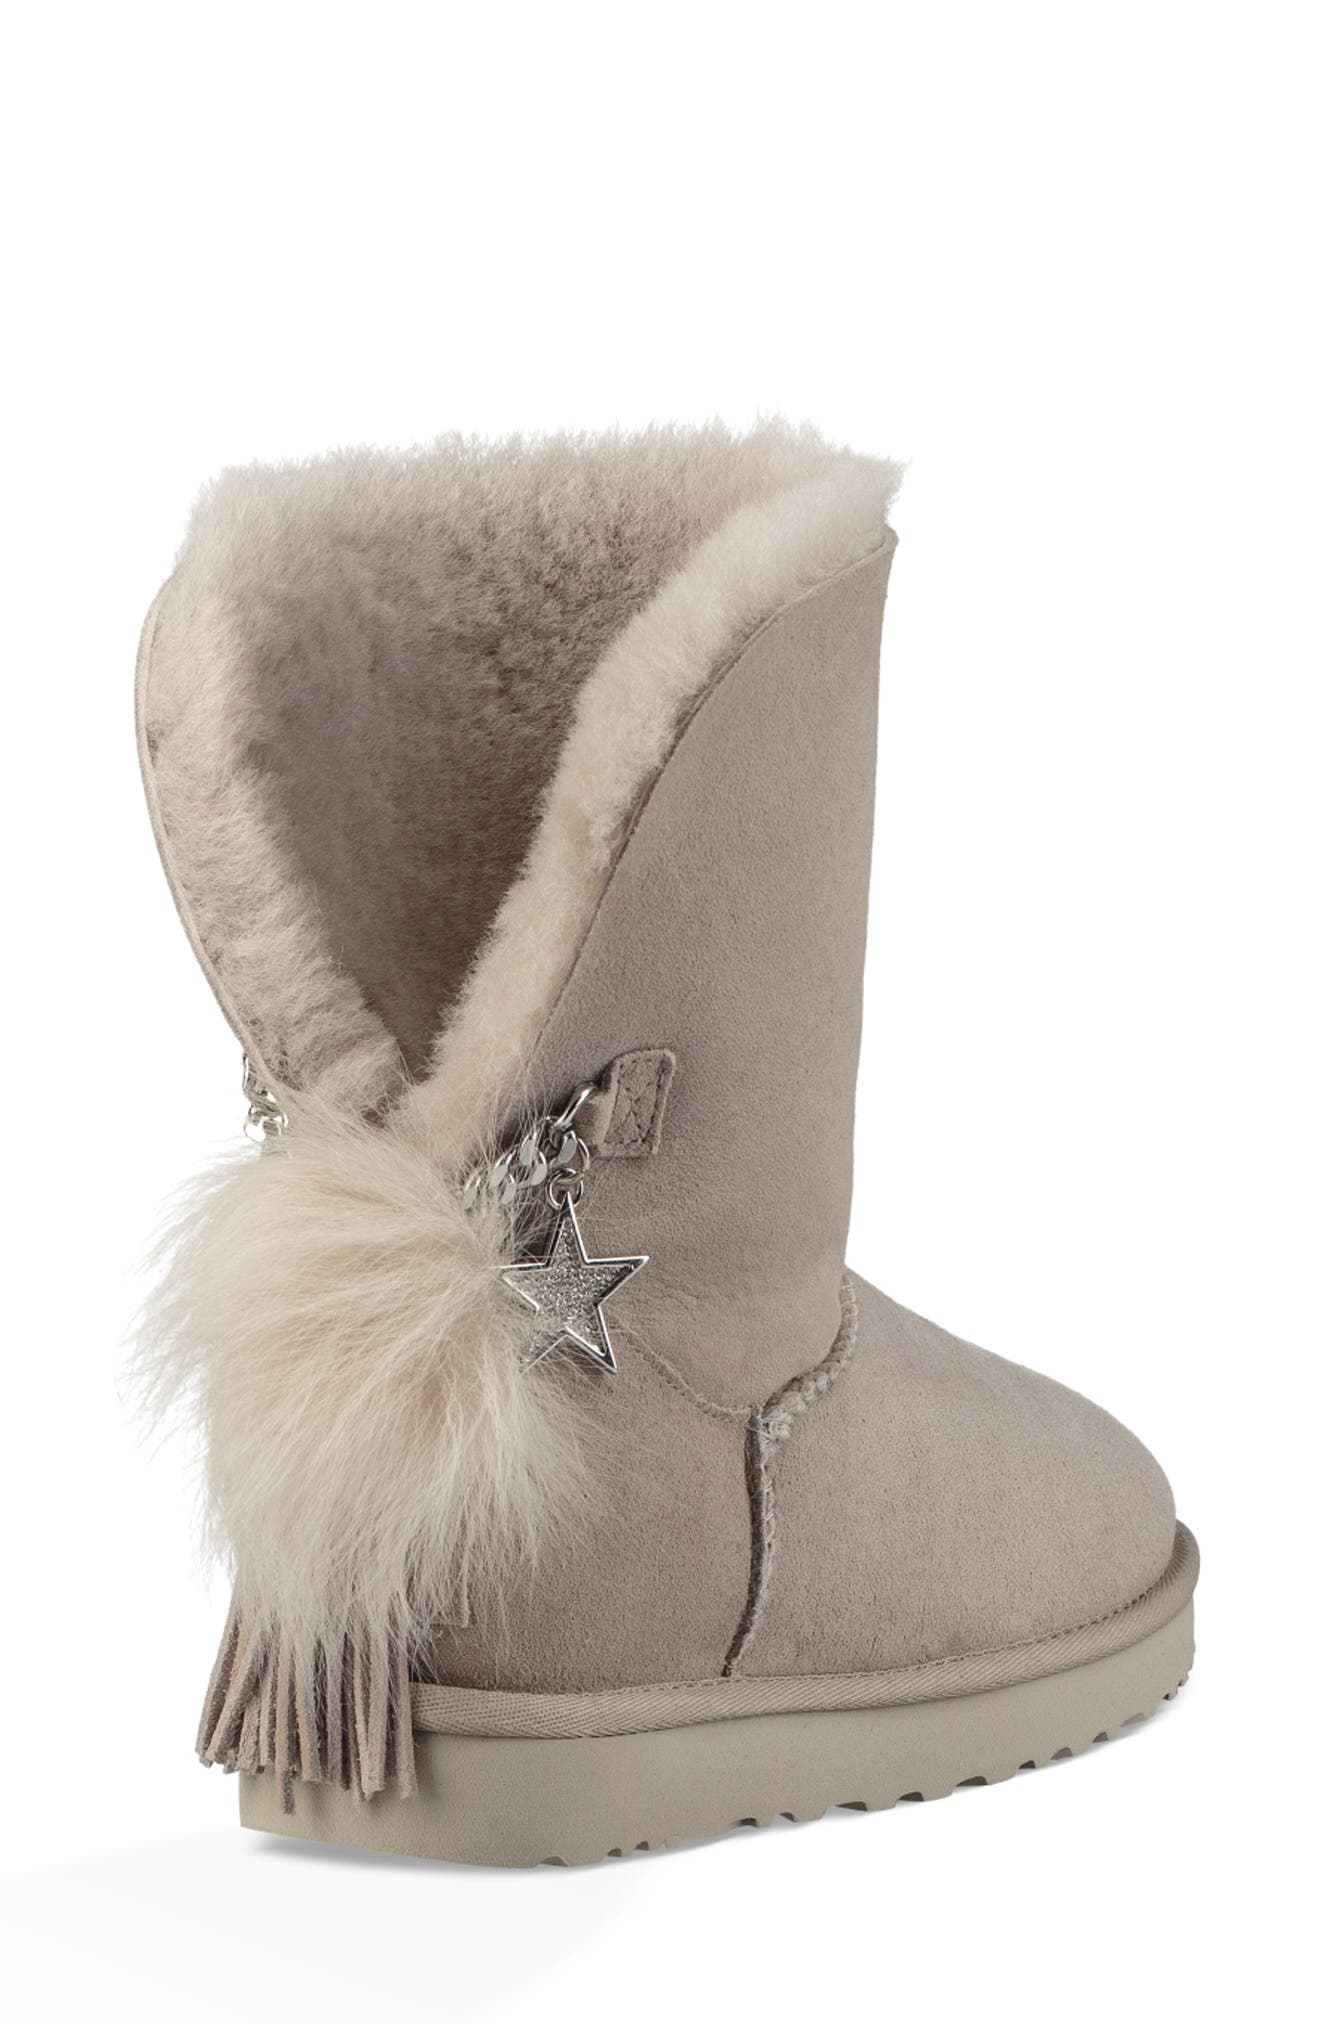 Classic Charm Bootie,                             Alternate thumbnail 2, color,                             WILLOW SUEDE